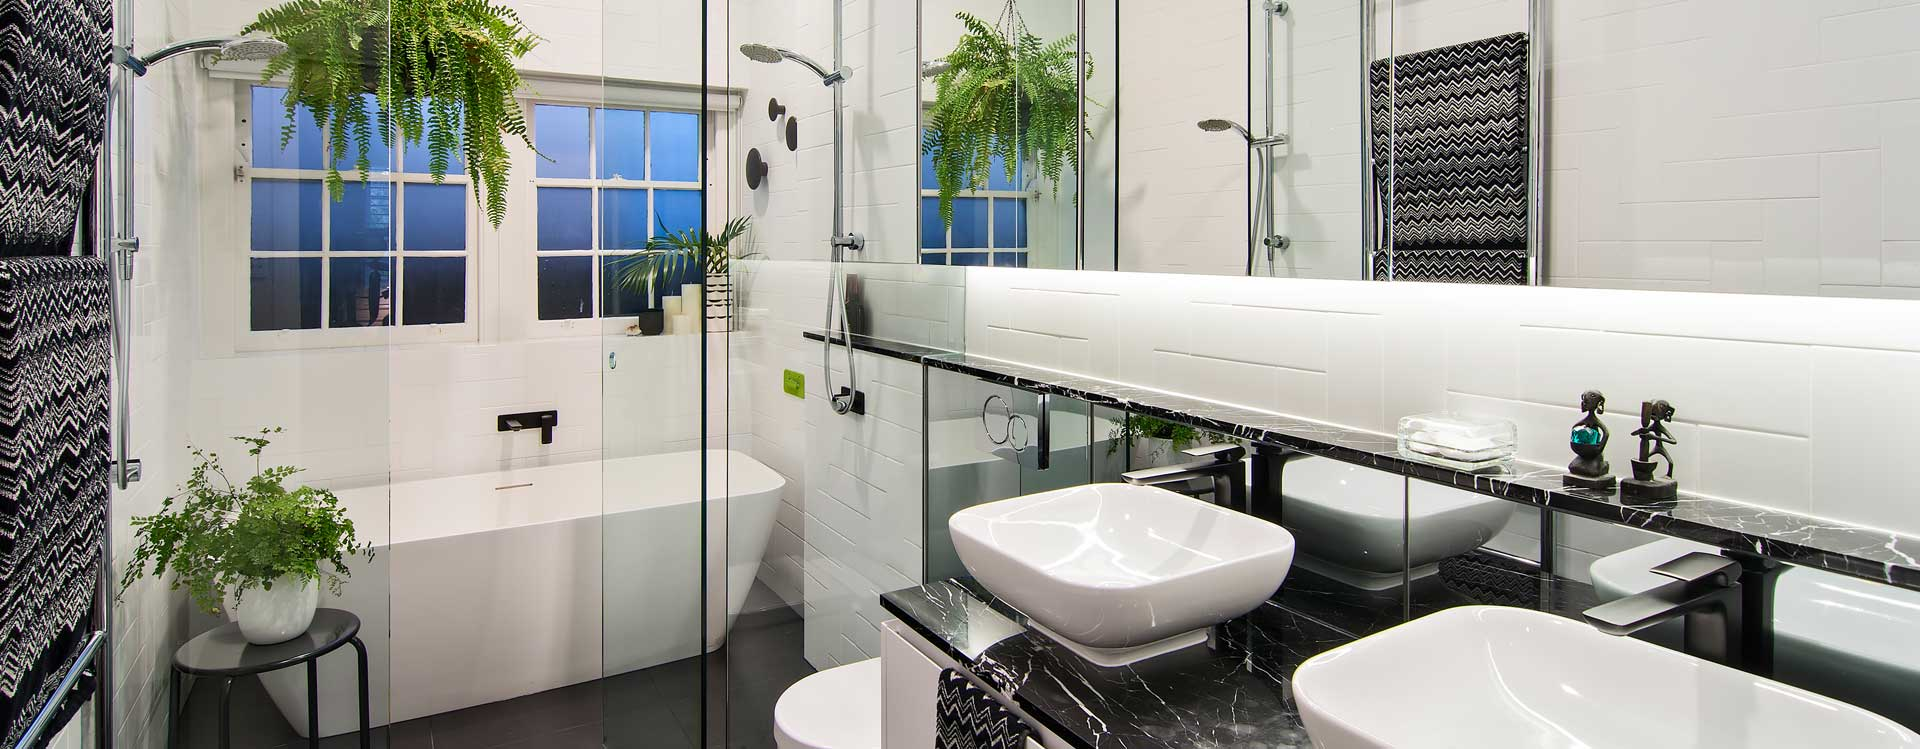 interior-bathroom-renovation-kcreative-interior-design-sydney